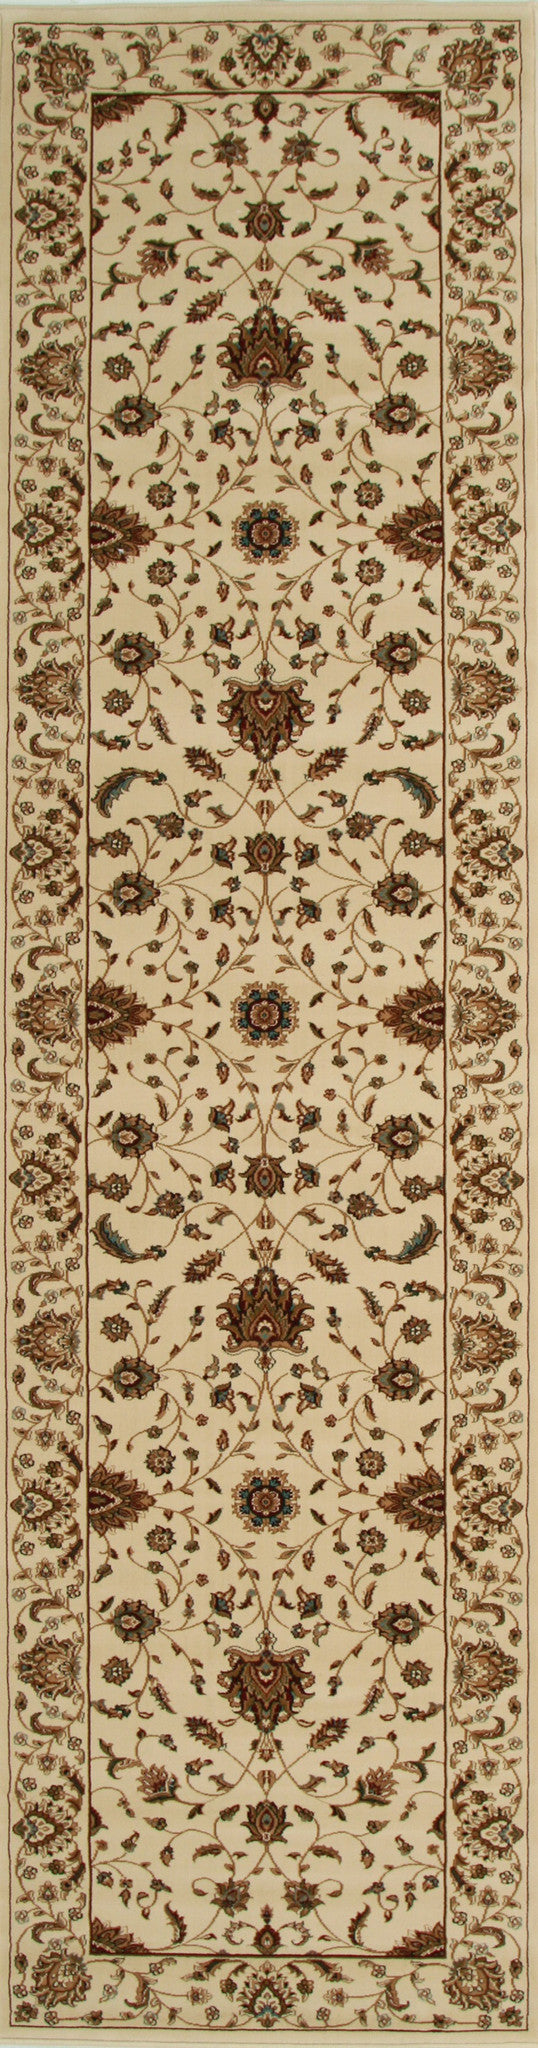 Stunning Formal Classic Design Rug Cream